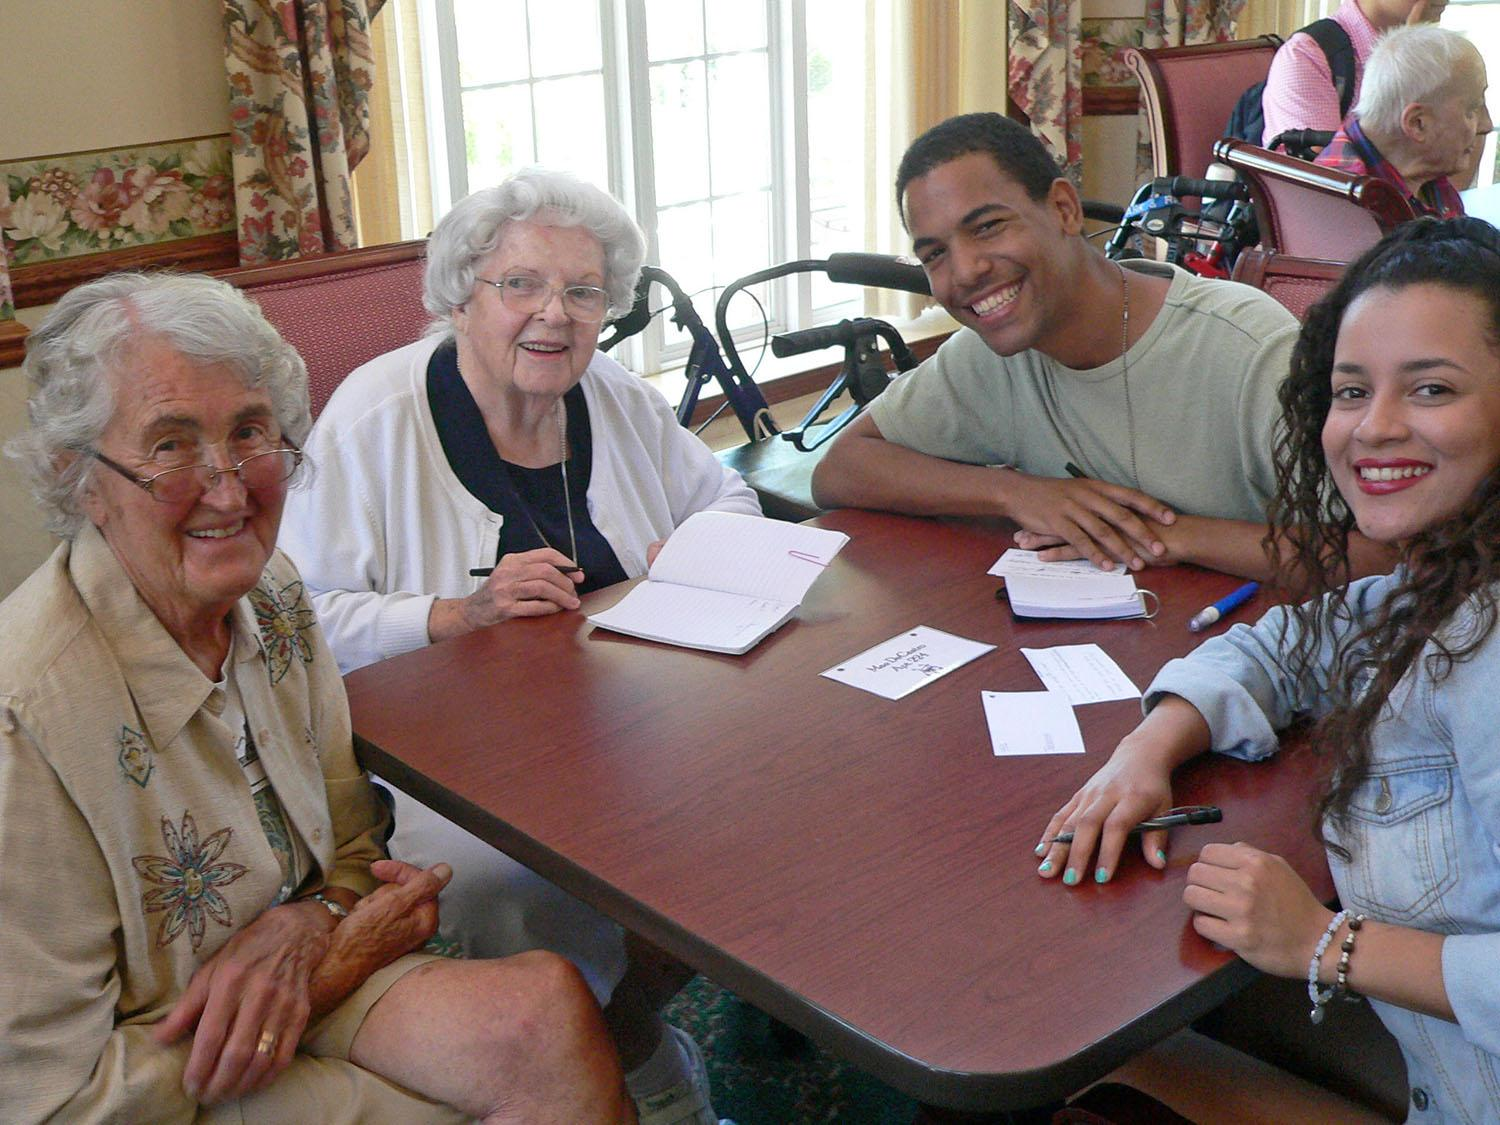 Participants in SUNY Oswego's summer English Immersion Program made a visit to Bishop's Commons in Oswego for a chance to practice their language skills while enjoying an afternoon of getting to know local seniors.